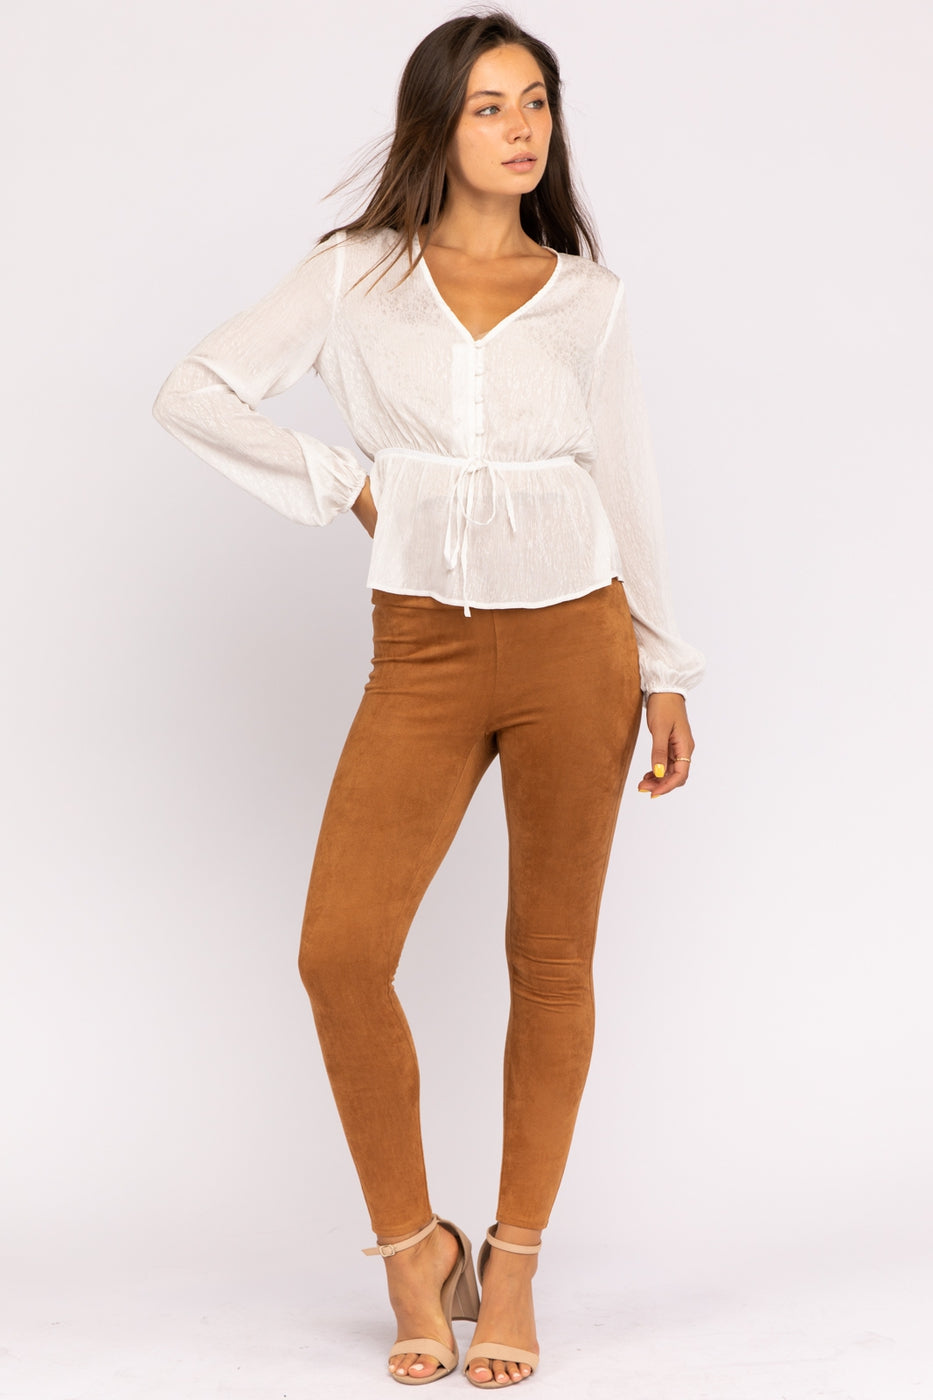 long Sleeve V-Neck Top With Button Down Siin Bees